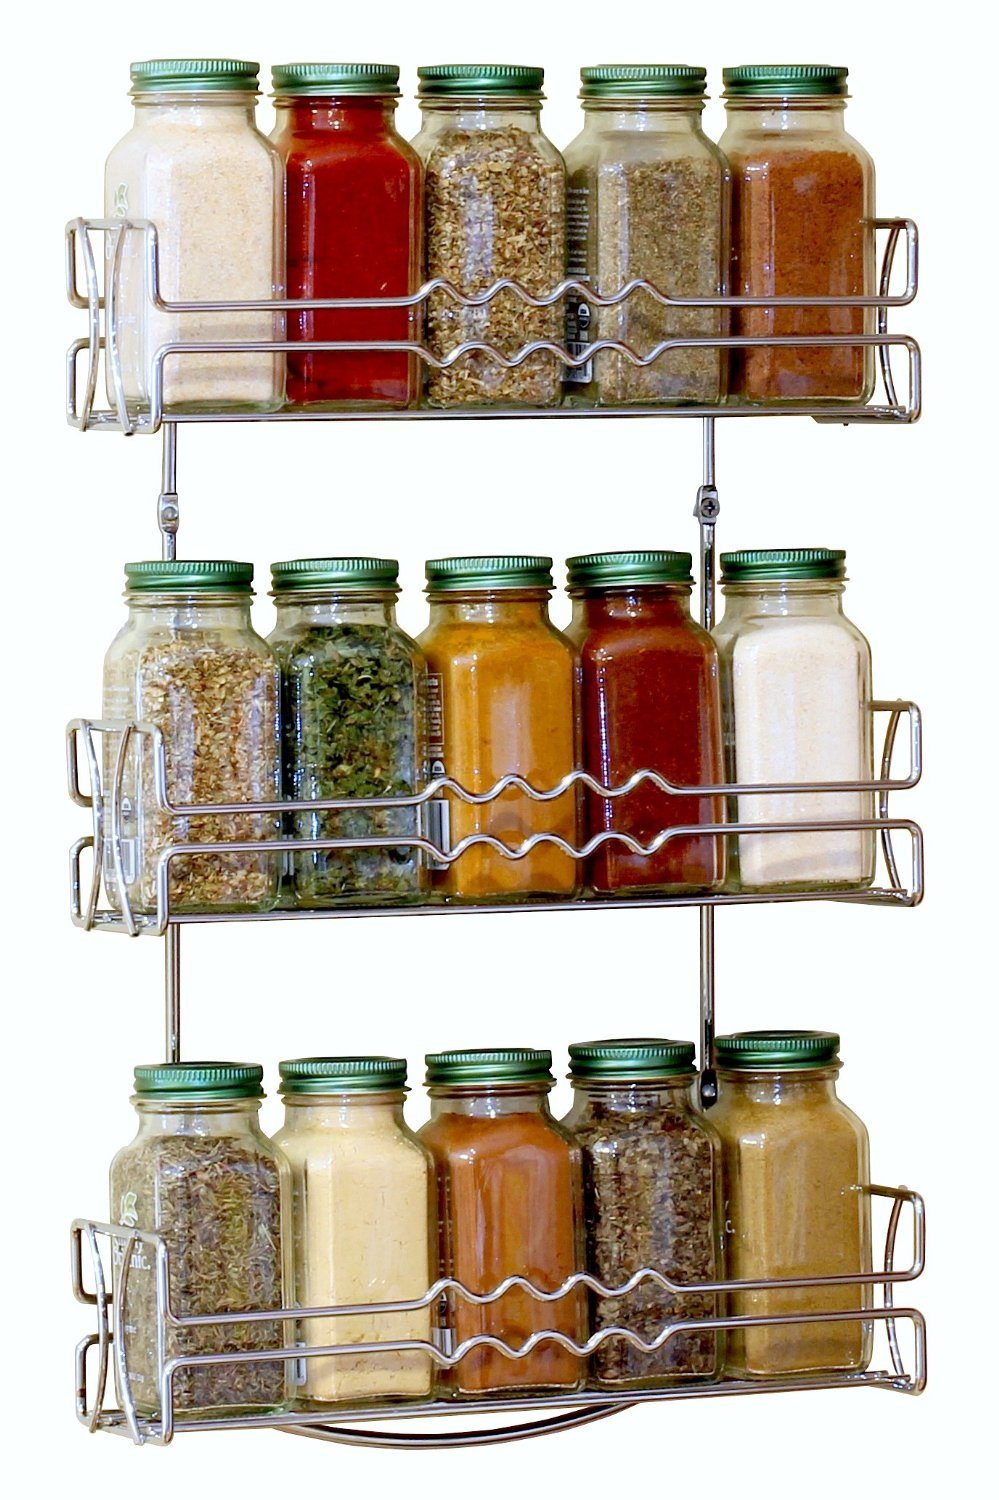 Door Mounted Wire Spice Rack  This Door Mounted Wire Spice Rack